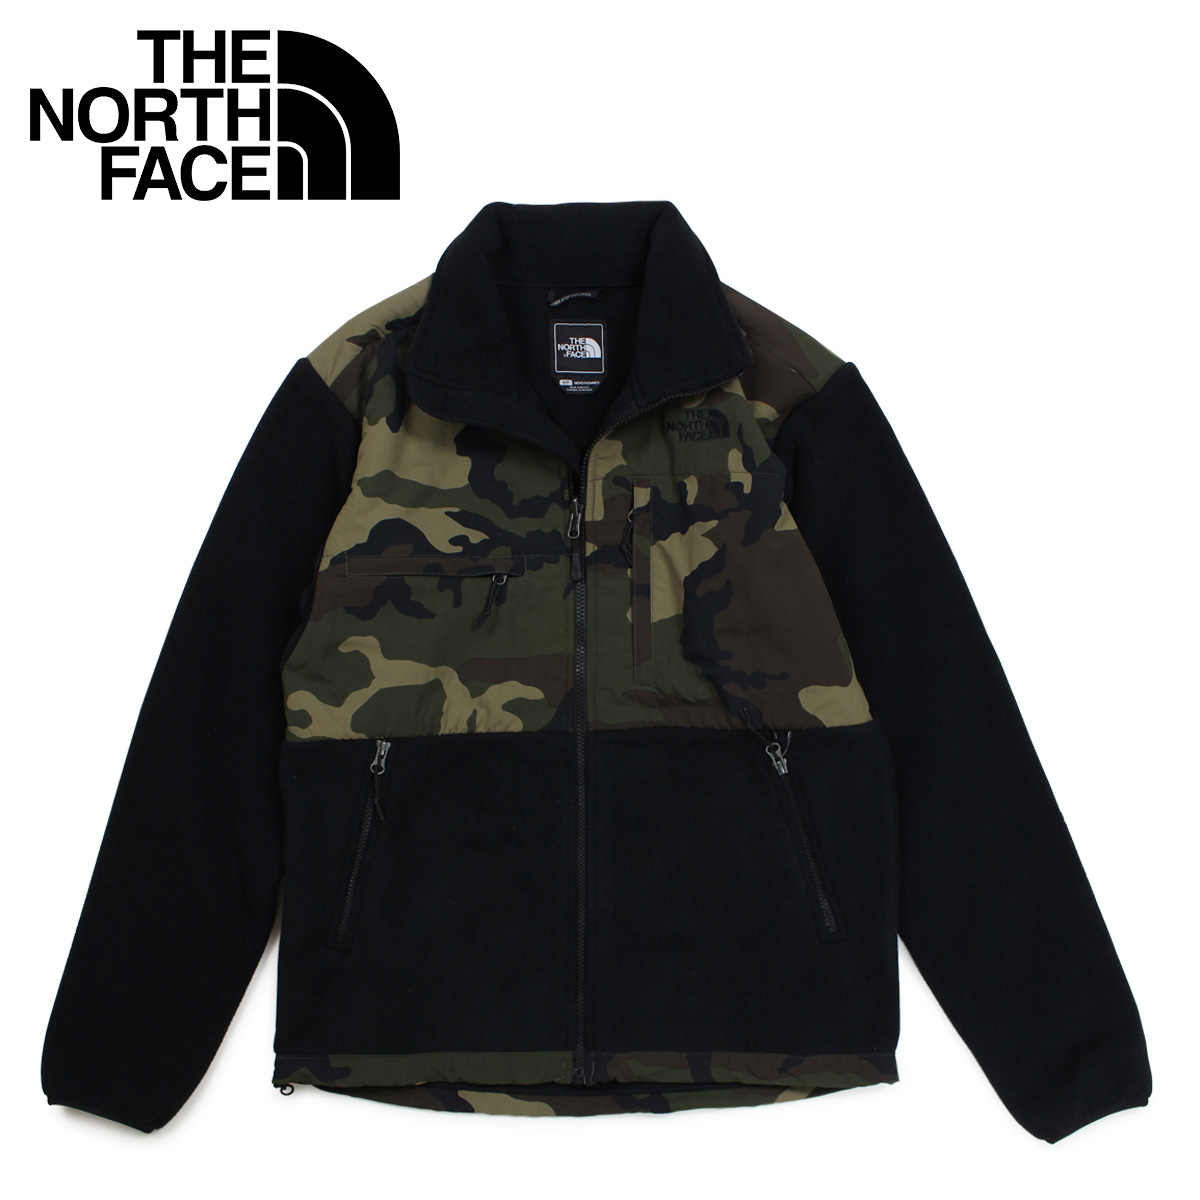 86c22b348833 North Face THE NORTH FACE ジャケットデナリメンズ MENS DENALI JACKET duck camouflage  AMYNU1V  4 1 Shinnyu load